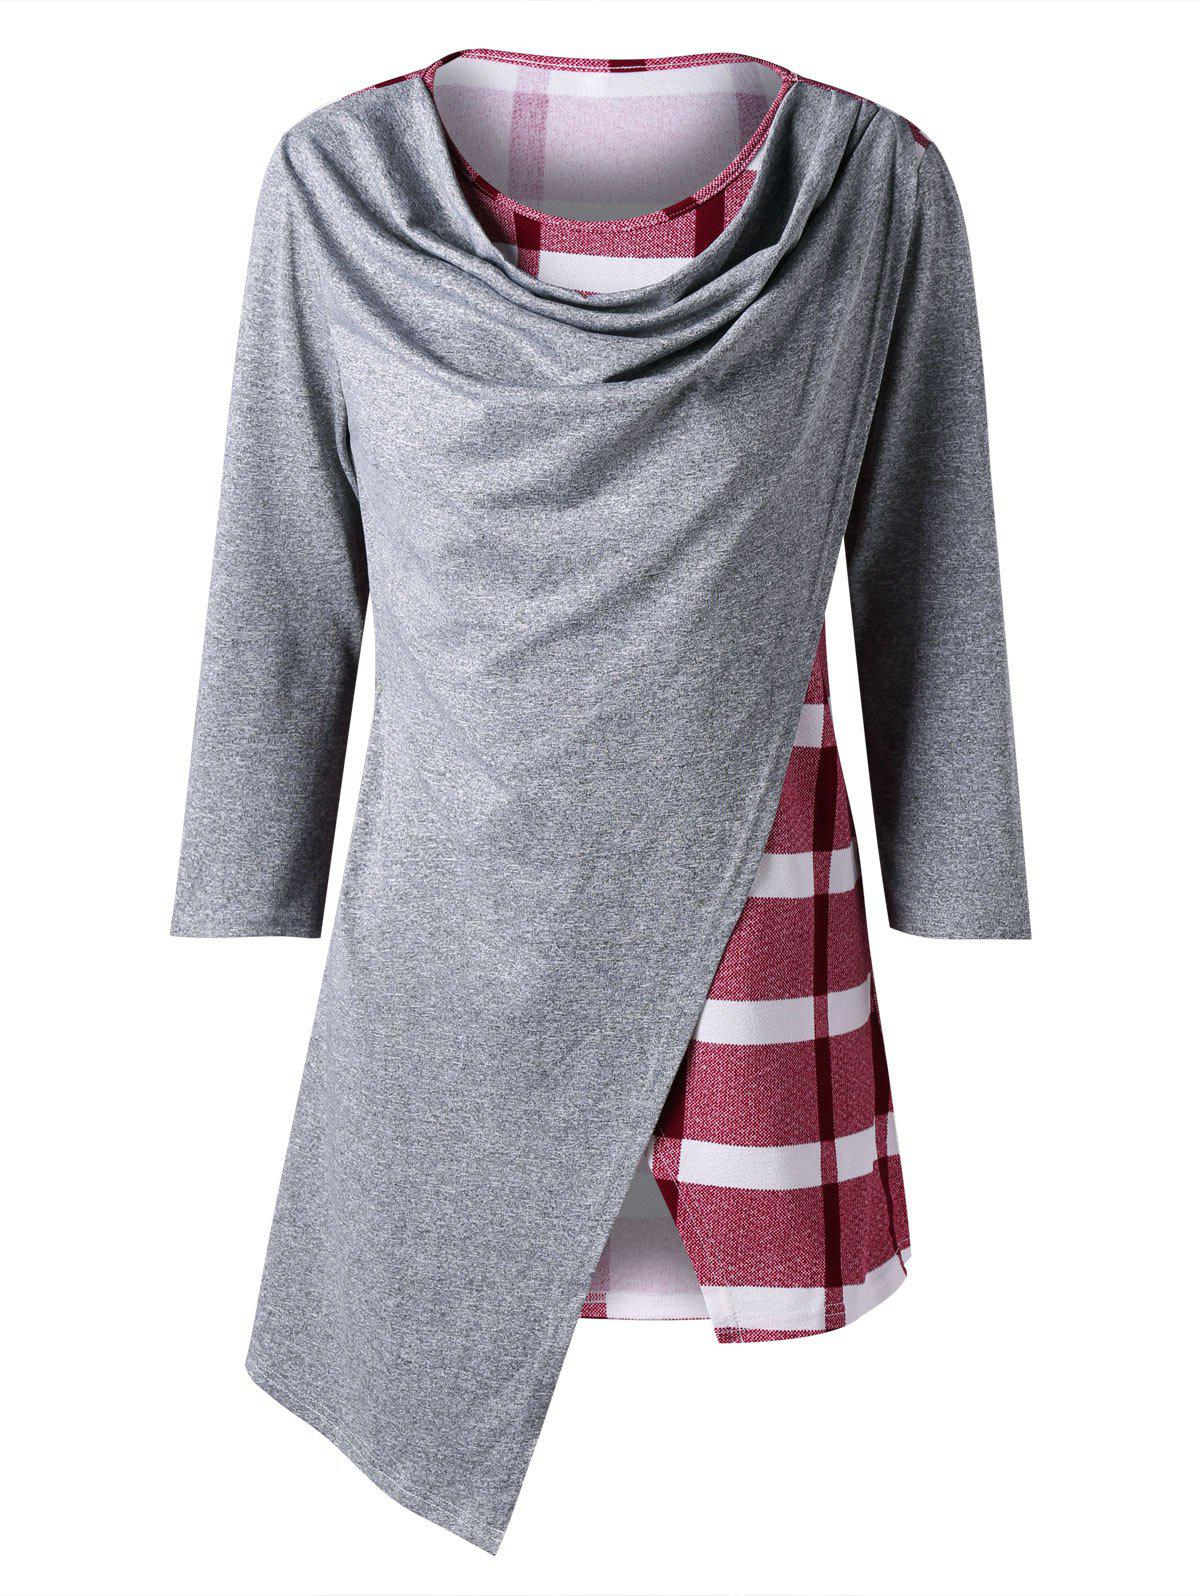 Marled Plaid Cowl Neck Top - RED L